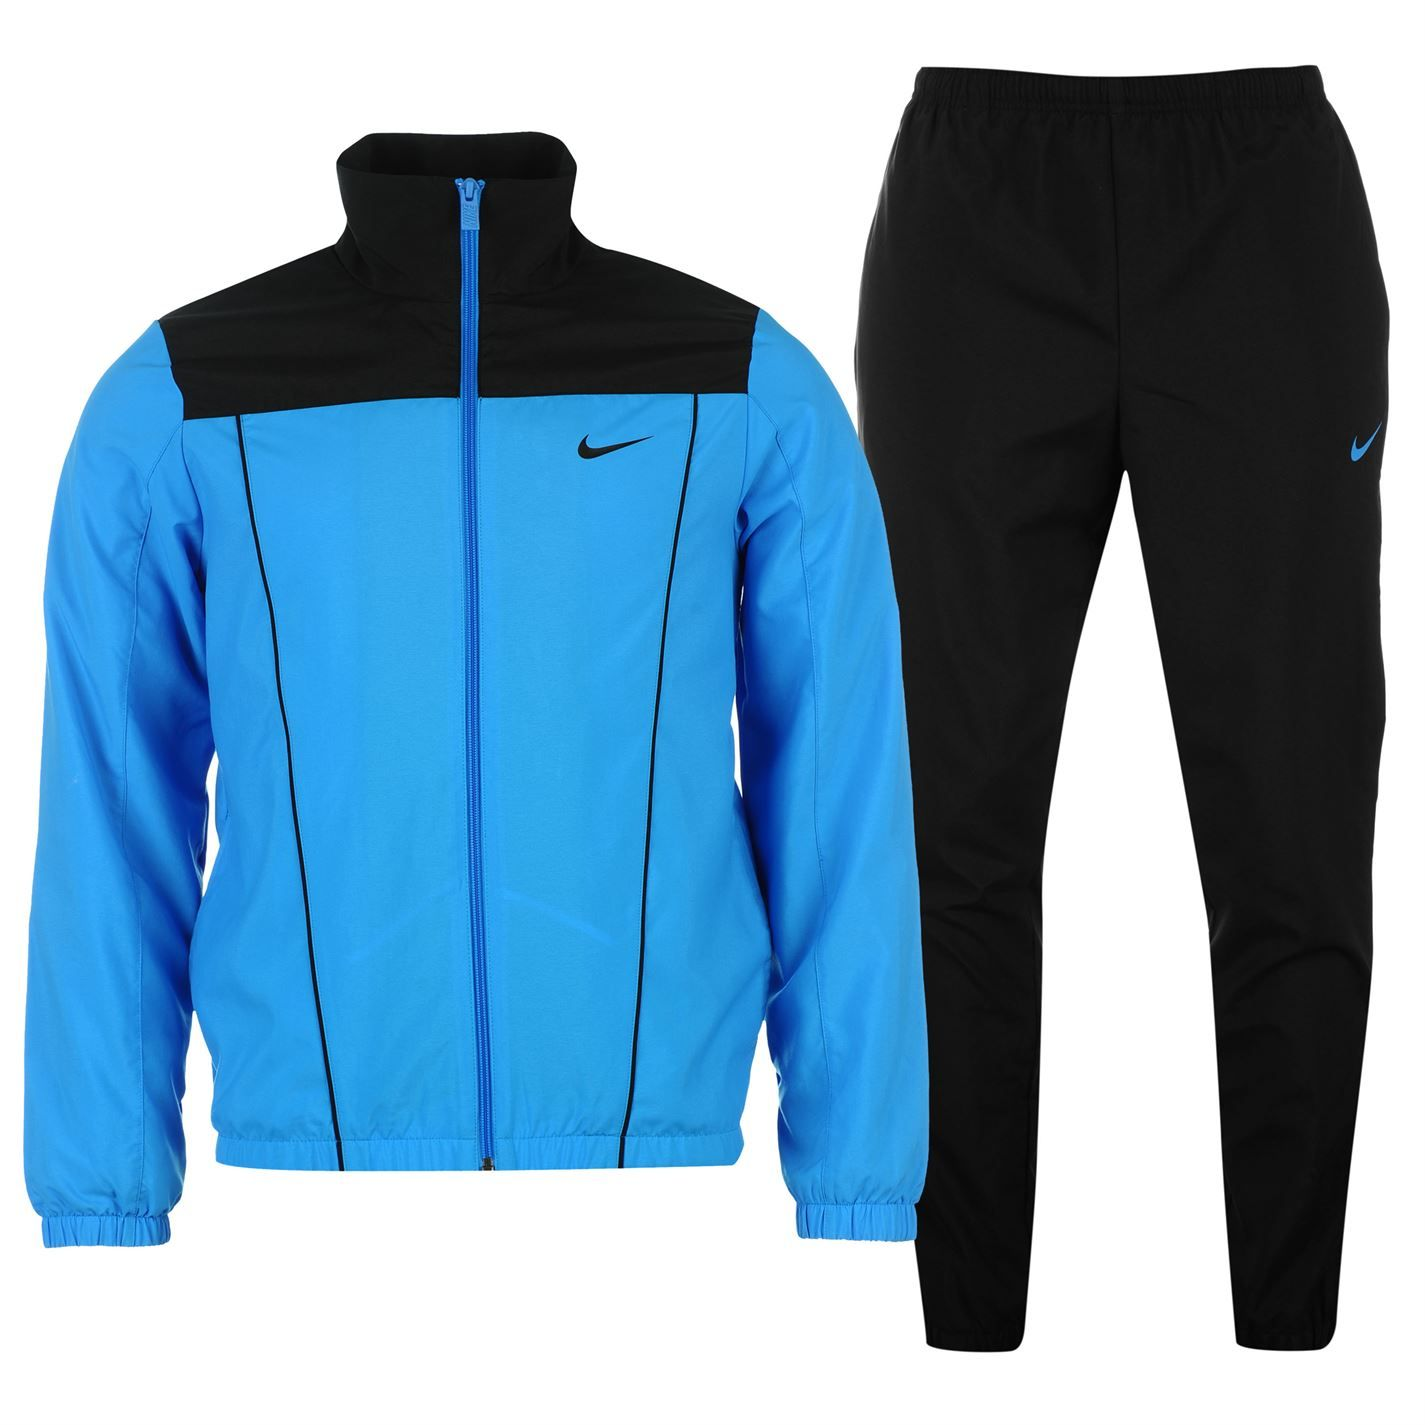 865ae00759 Nike | Nike Pacific Woven Tracksuit Men's | Men's Tracksuits ...